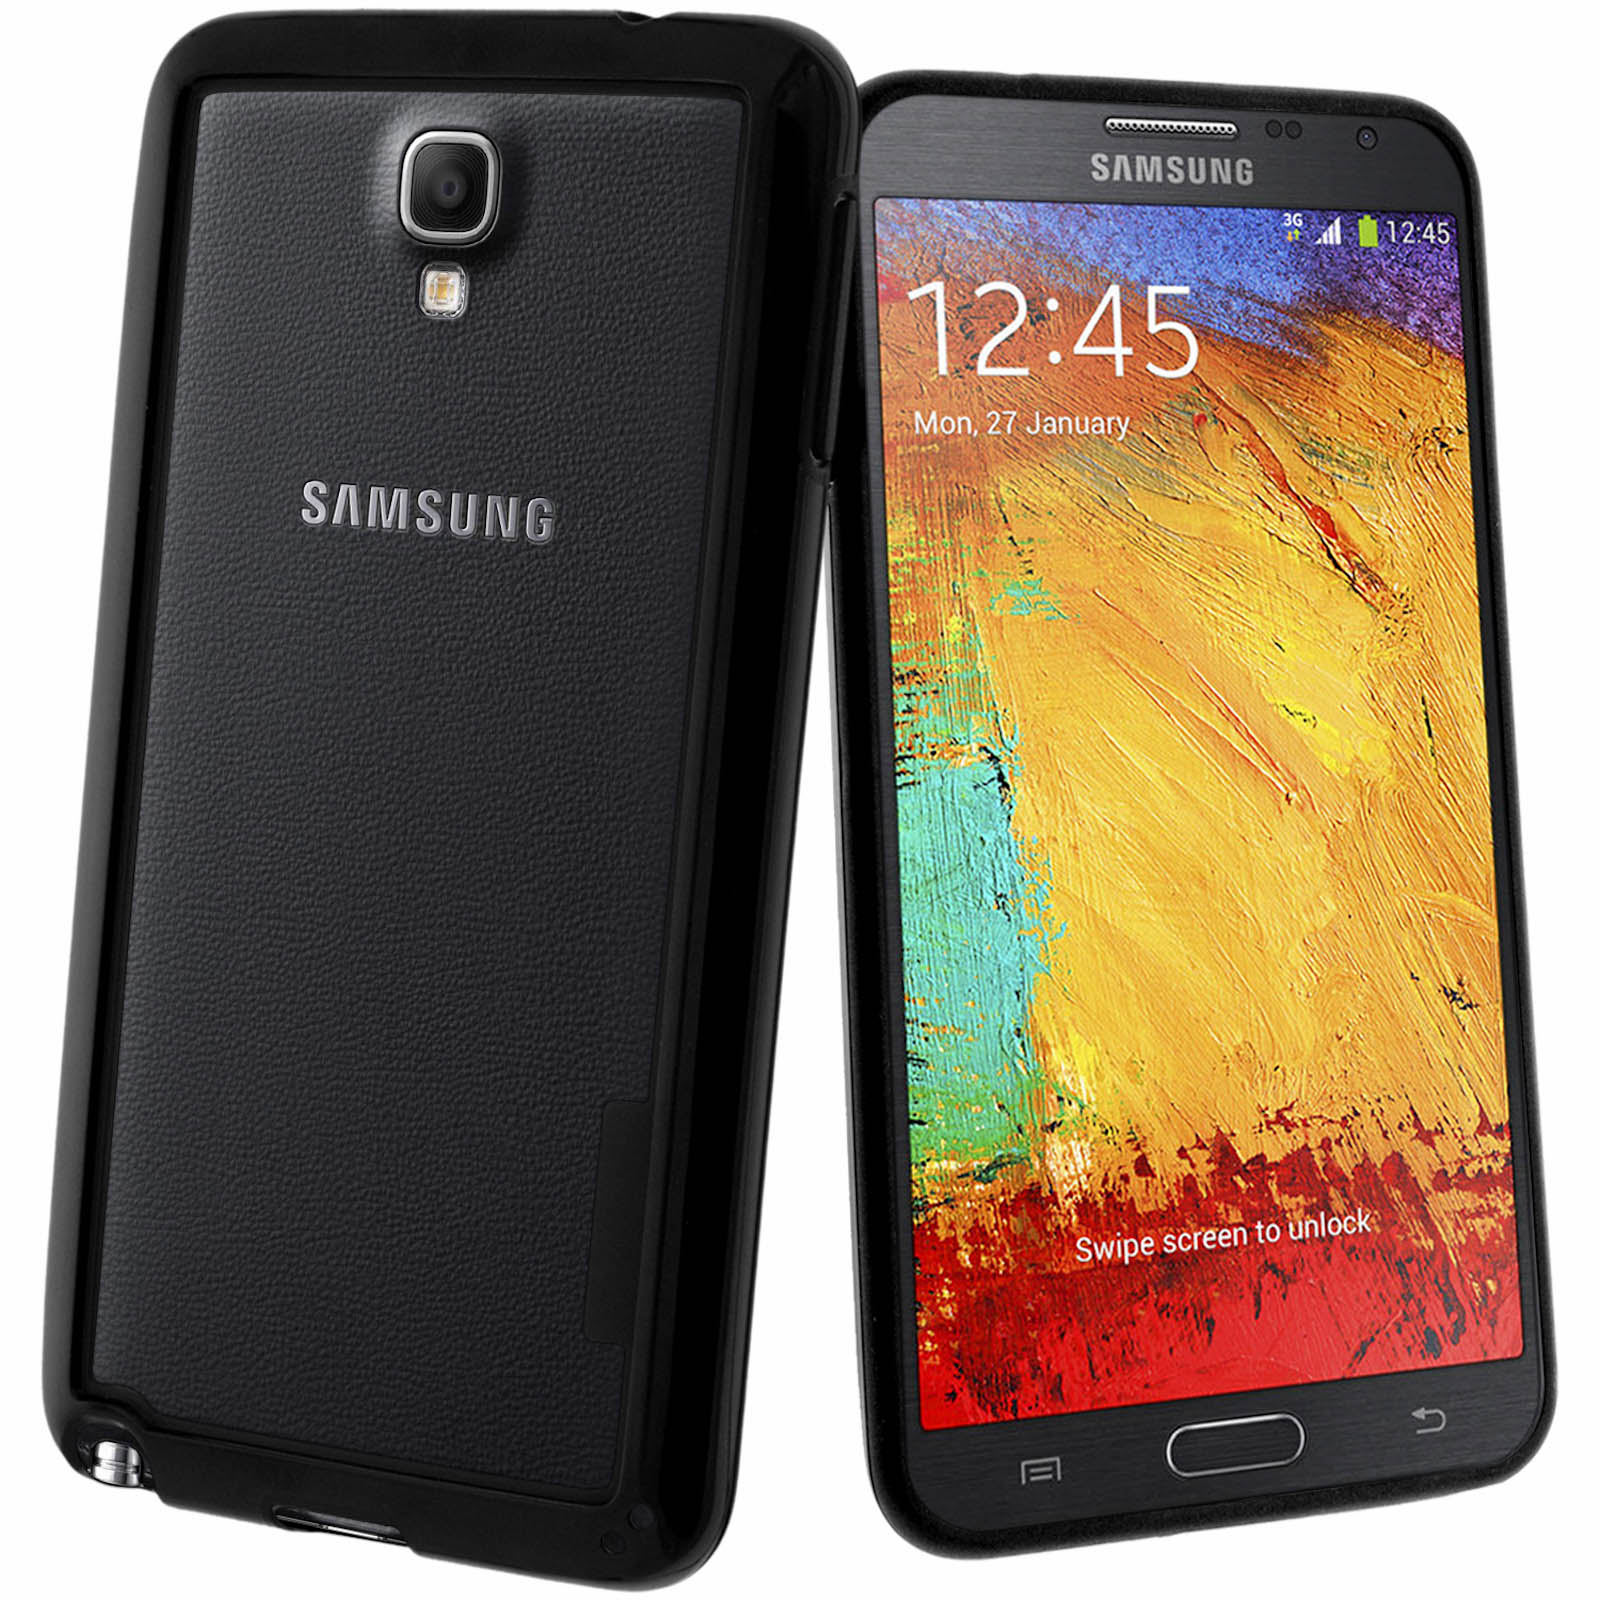 samsung galaxy note 3 vs samsung galaxy note 3 lite meilleur mobile. Black Bedroom Furniture Sets. Home Design Ideas